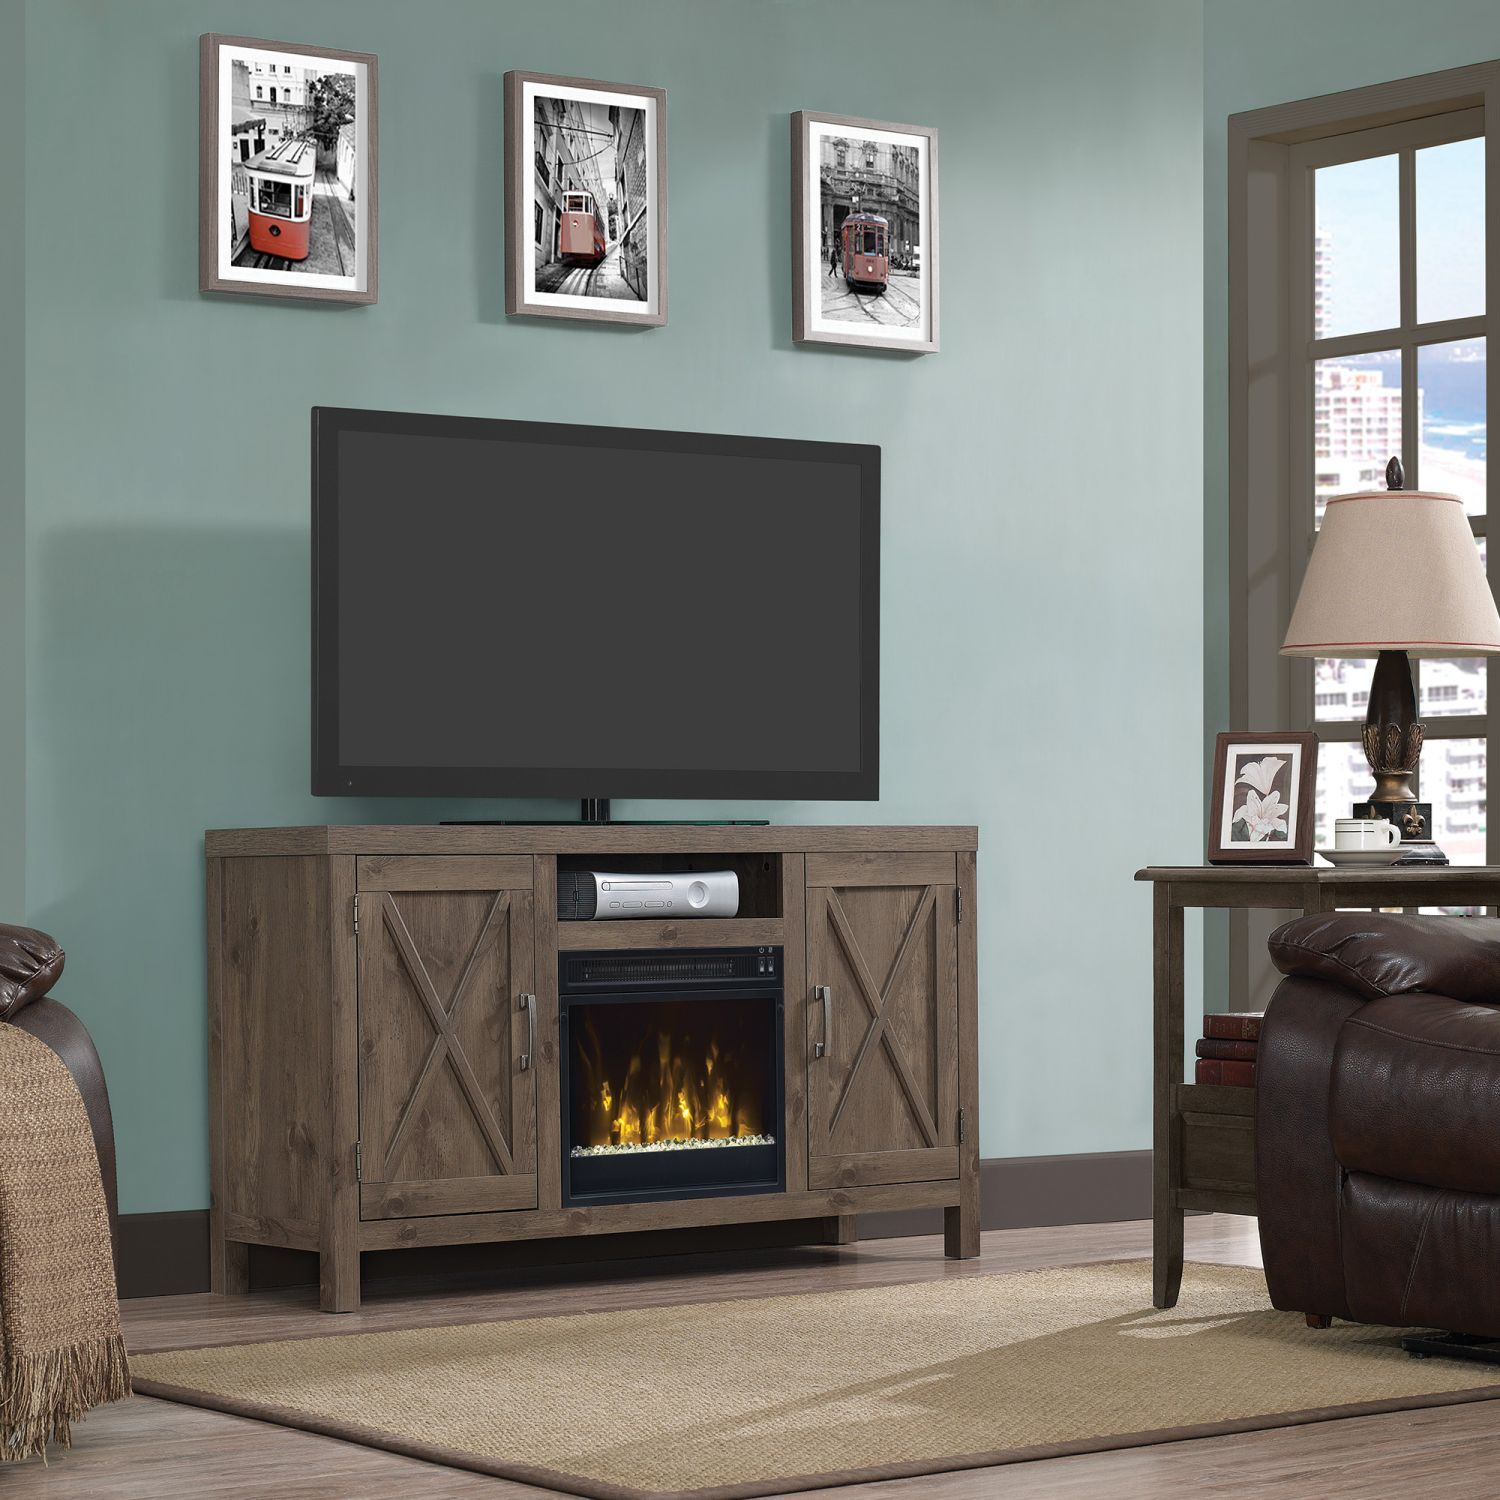 Humboldt Tv Stand For Tvs Up To 55 With Fireplace 18mm6076 Pi14s